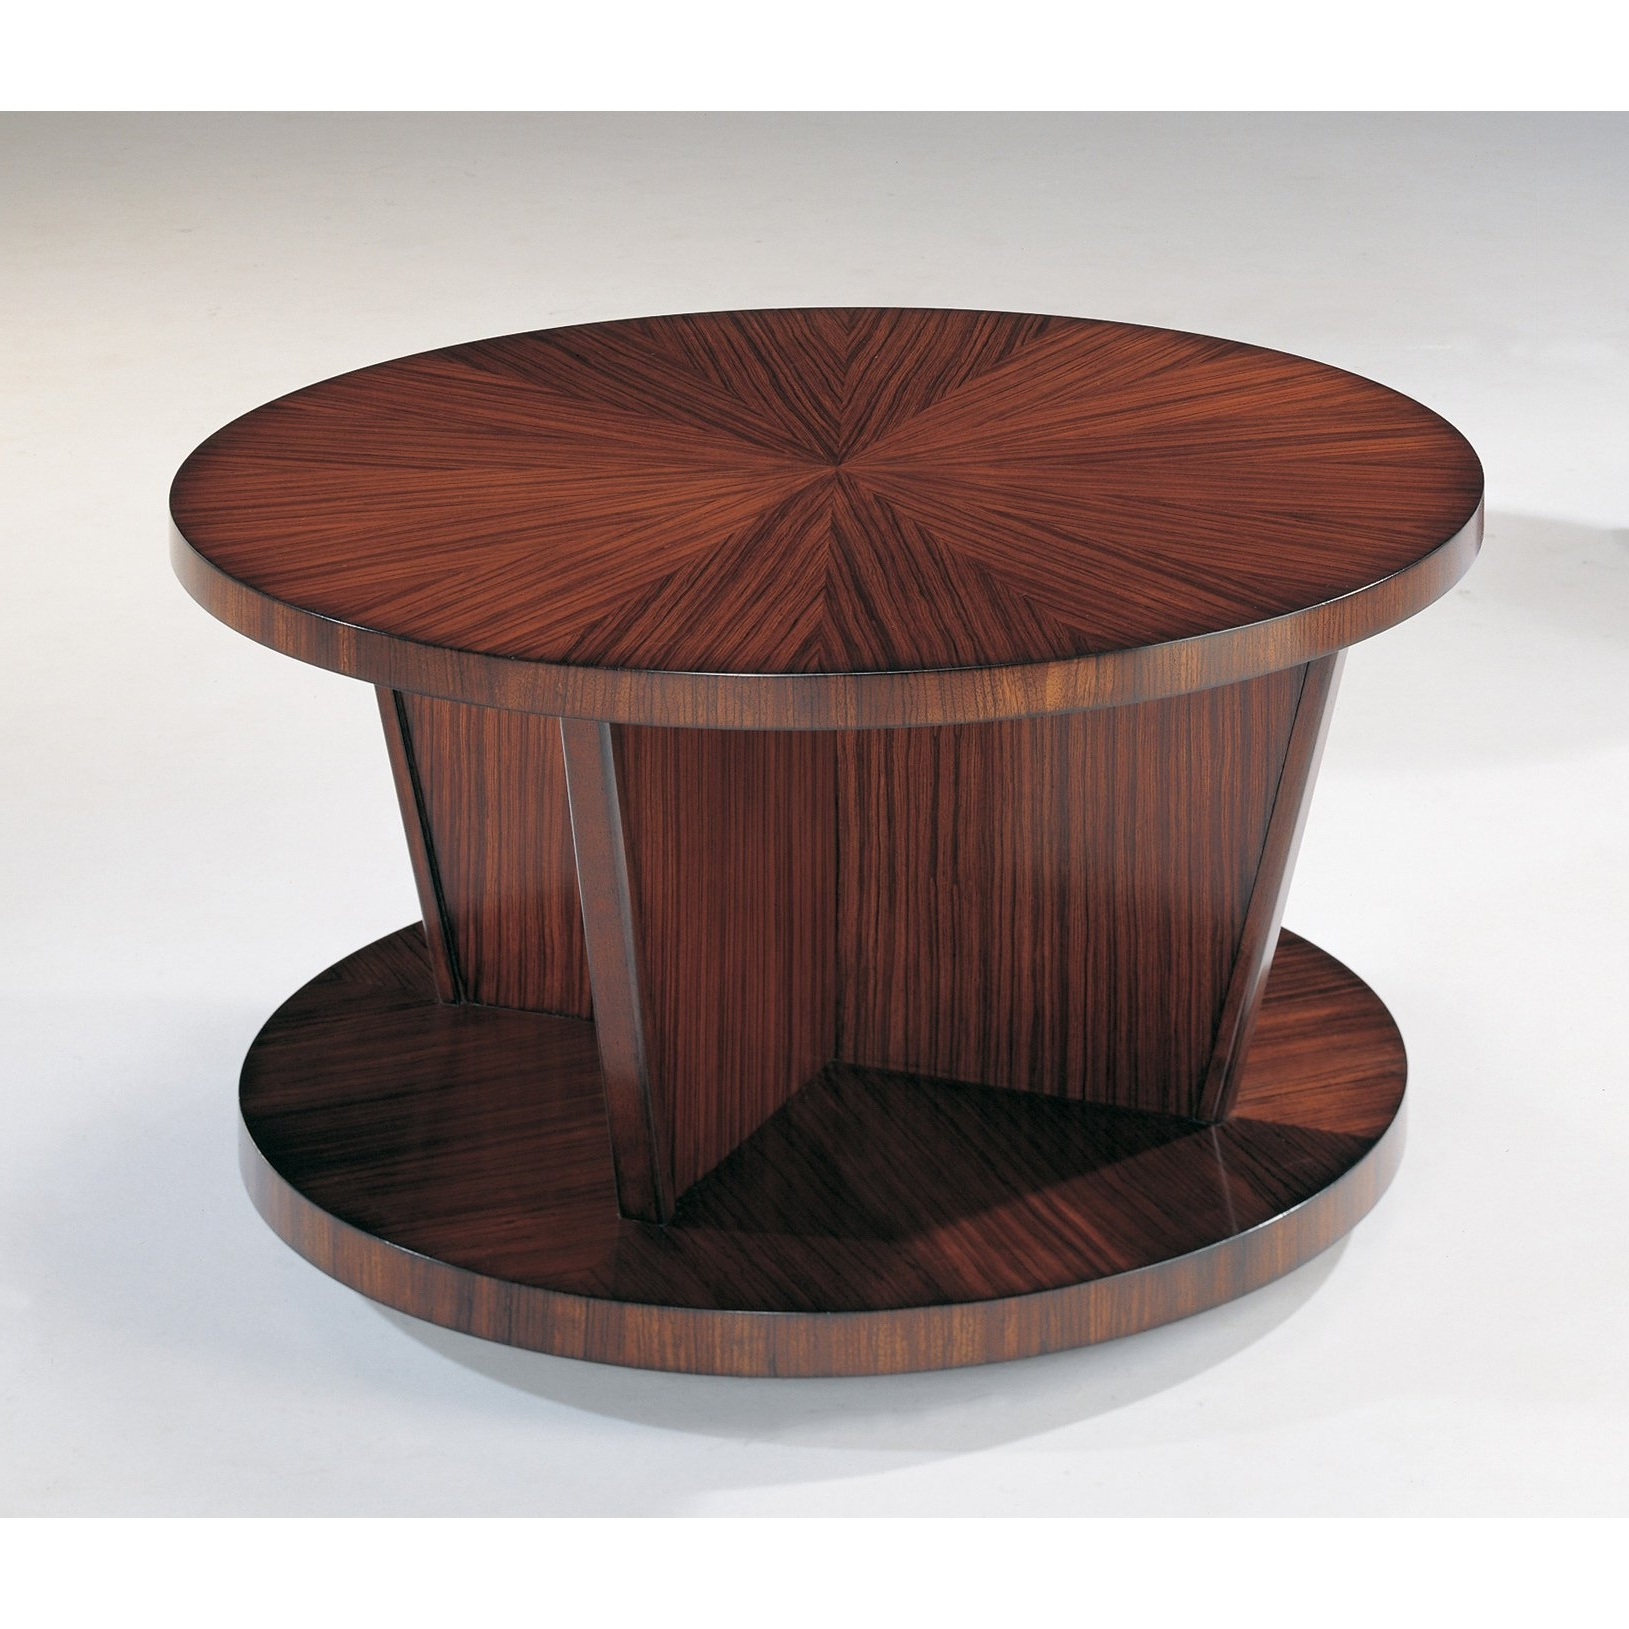 Newest Axis Cocktail Tables Inside Shop Axis Nutmeg Cocktail Table – Free Shipping Today – Overstock (View 3 of 20)